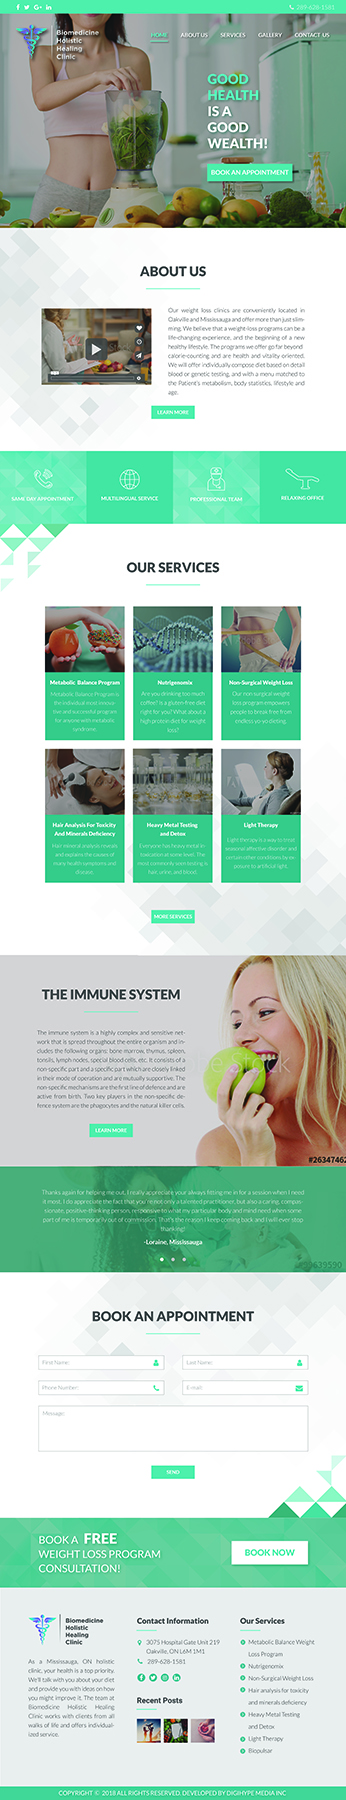 Nutrition, Wellness & Holistic health in Mississauga (website design mockup)